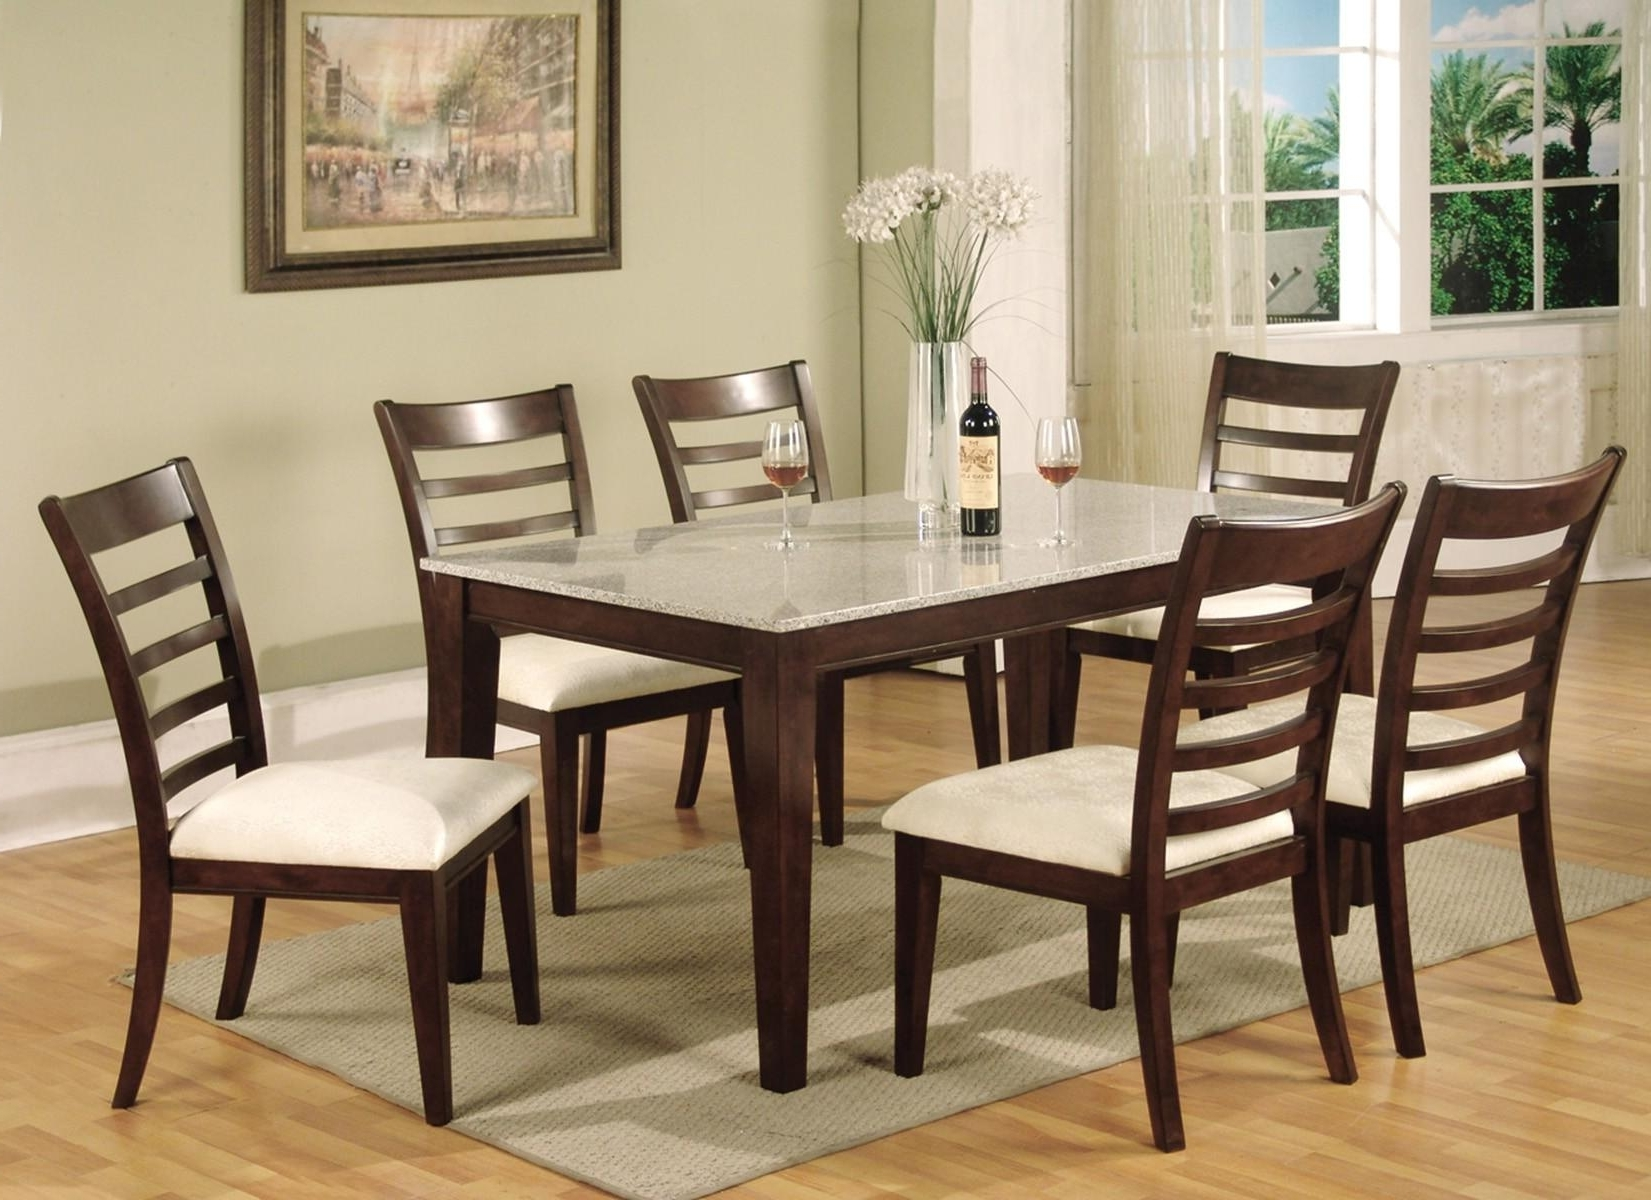 Most Recent Unique Dining Table Sets – Castrophotos Intended For Mallard 7 Piece Extension Dining Sets (Gallery 14 of 25)